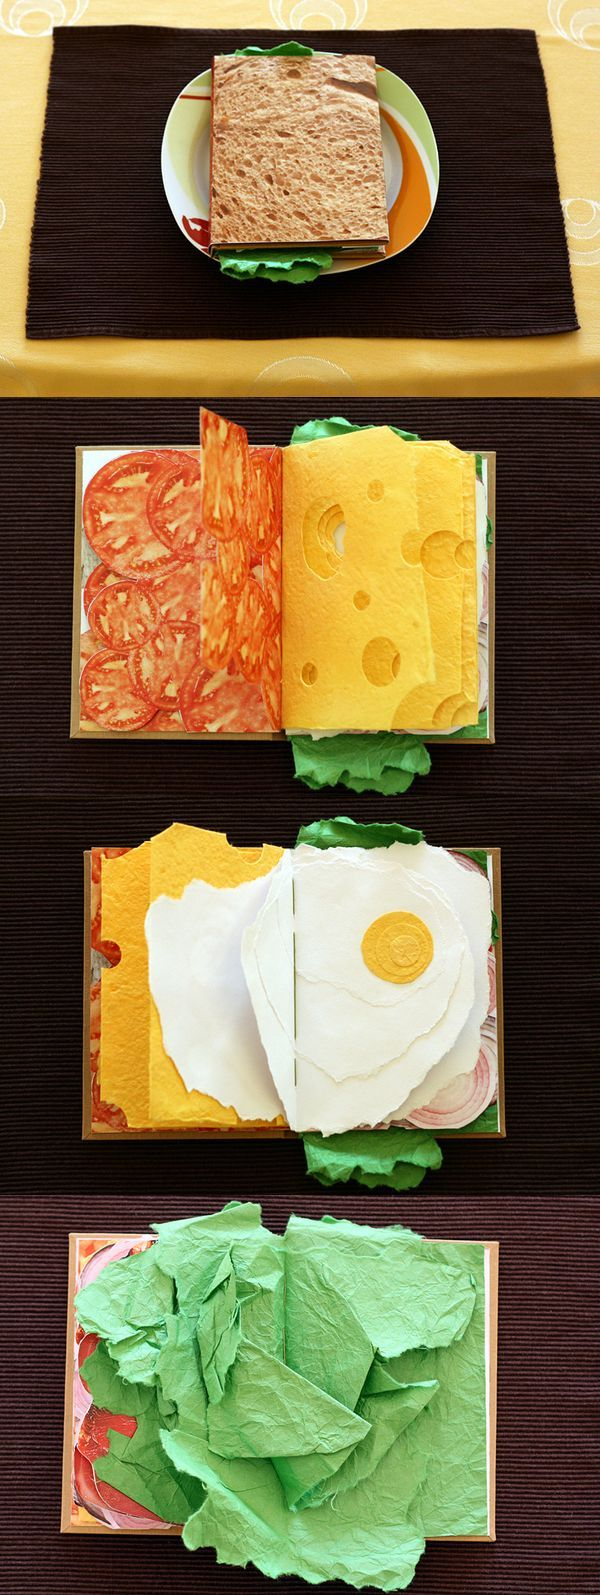 Sandwich Book by Pawel Piotrowski. 16 Creative Packaging Examples. #packaging Encontrado en enfuzed.com